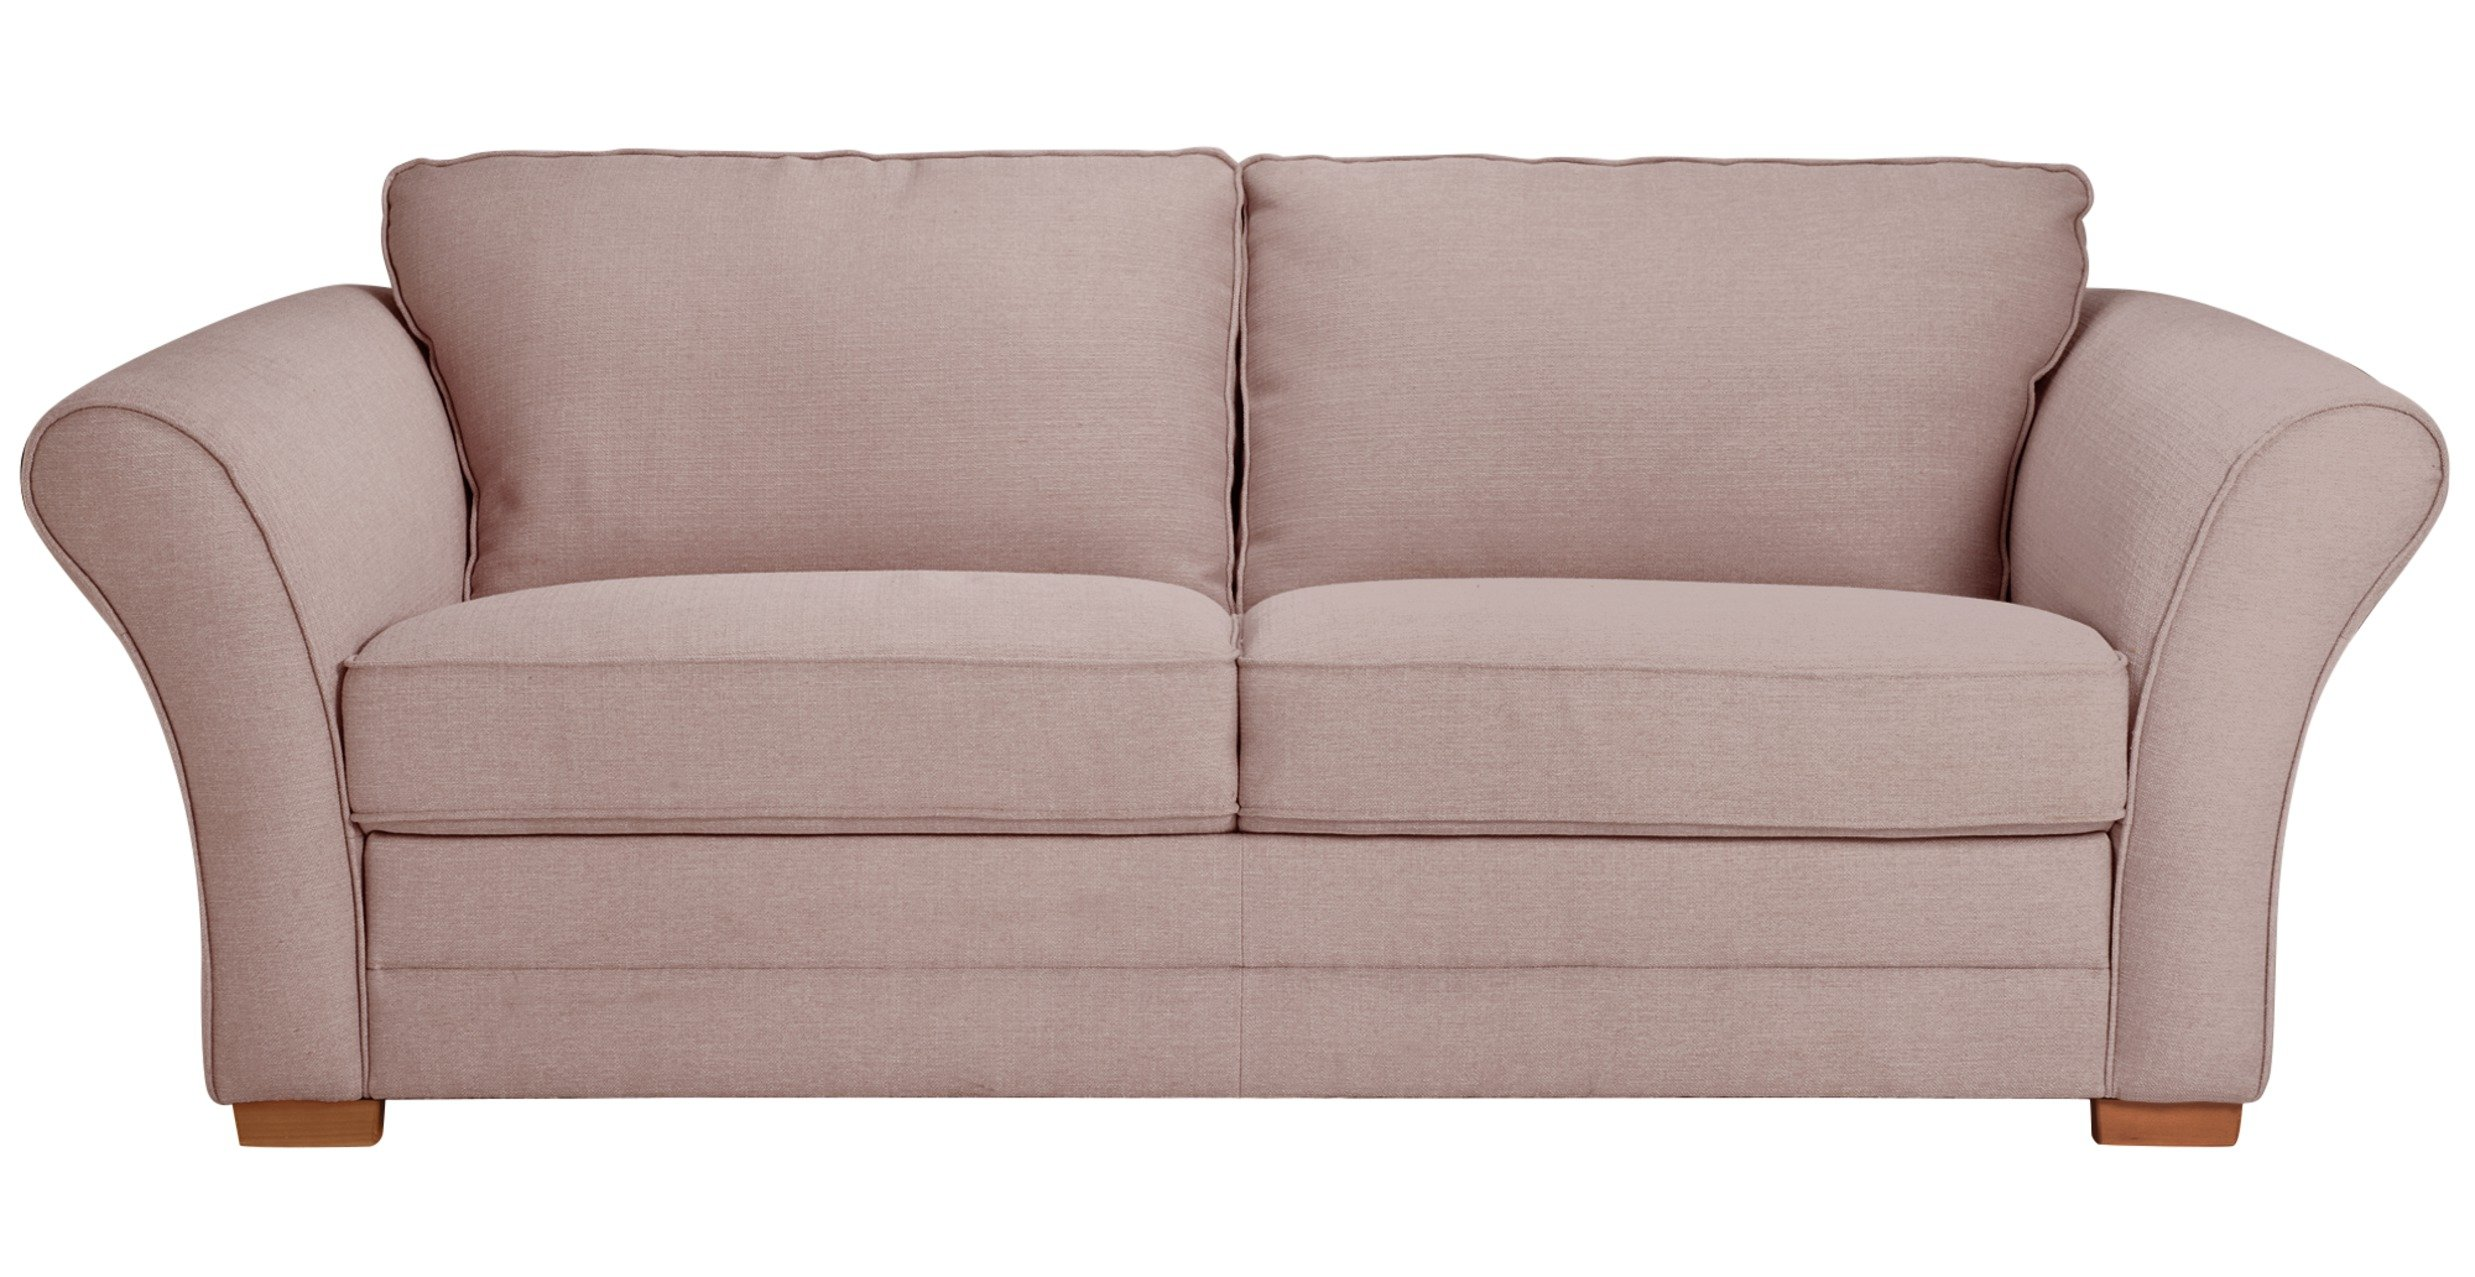 Argos Home Thornton 3 Seater Fabric Sofa Bed review